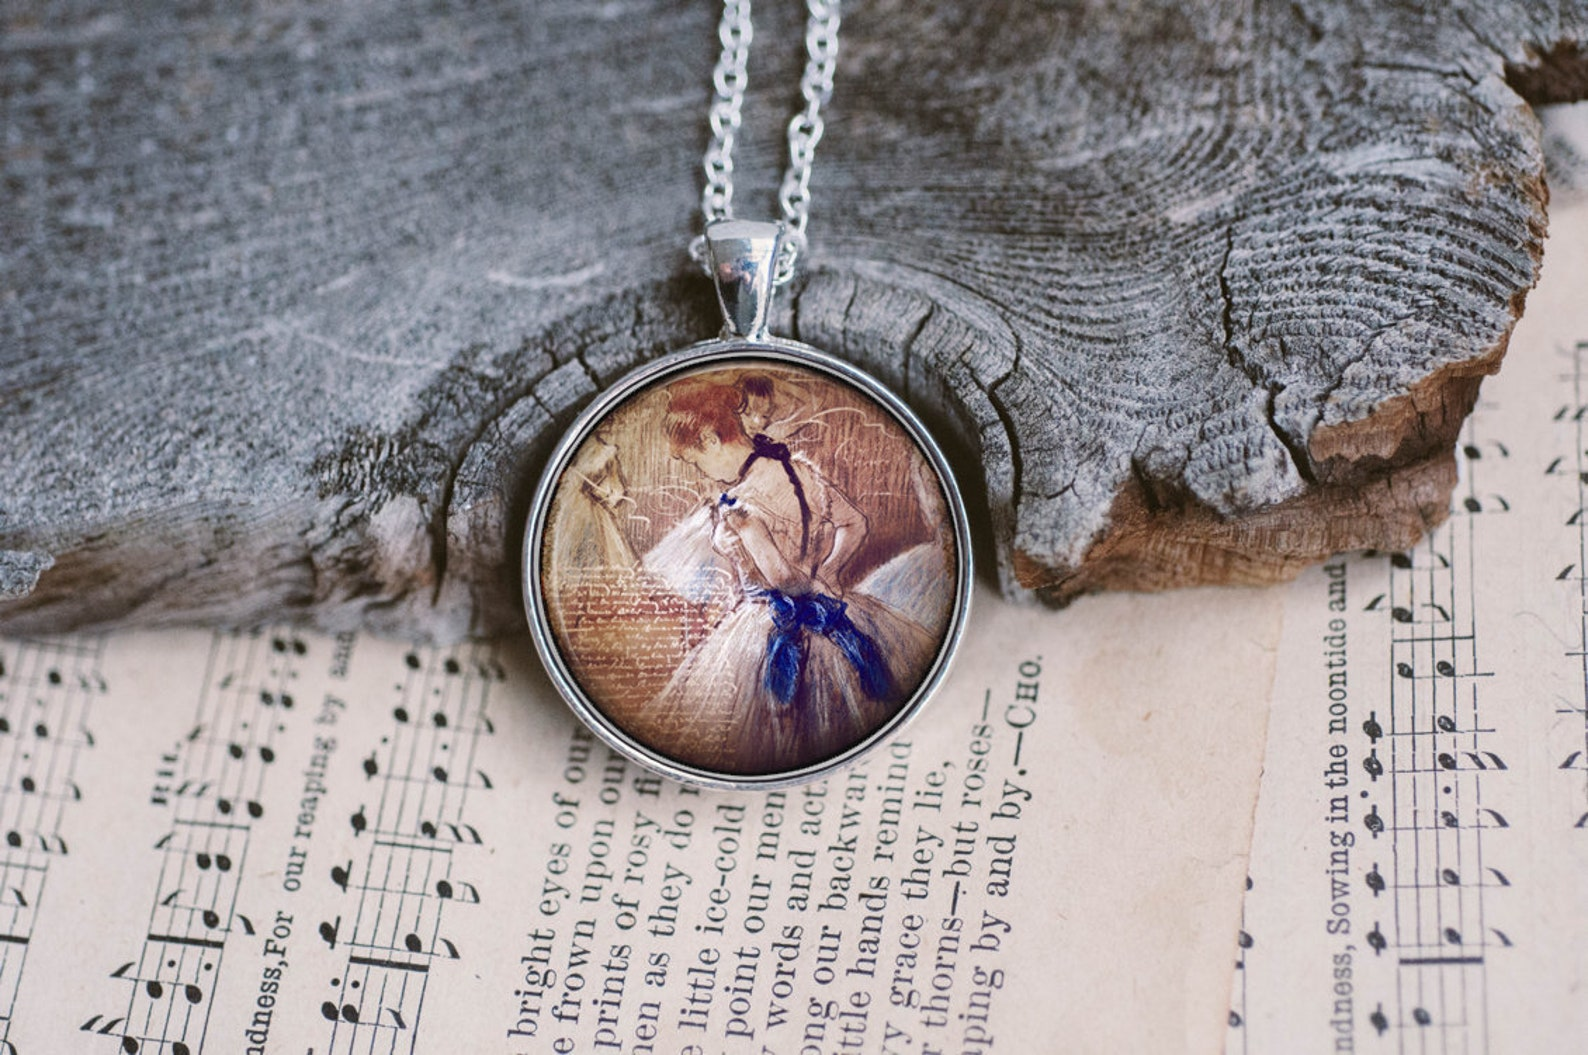 degas ballet, ballerina necklace, dance teacher gifts, dancer gifts, ballet necklace, little ballerina